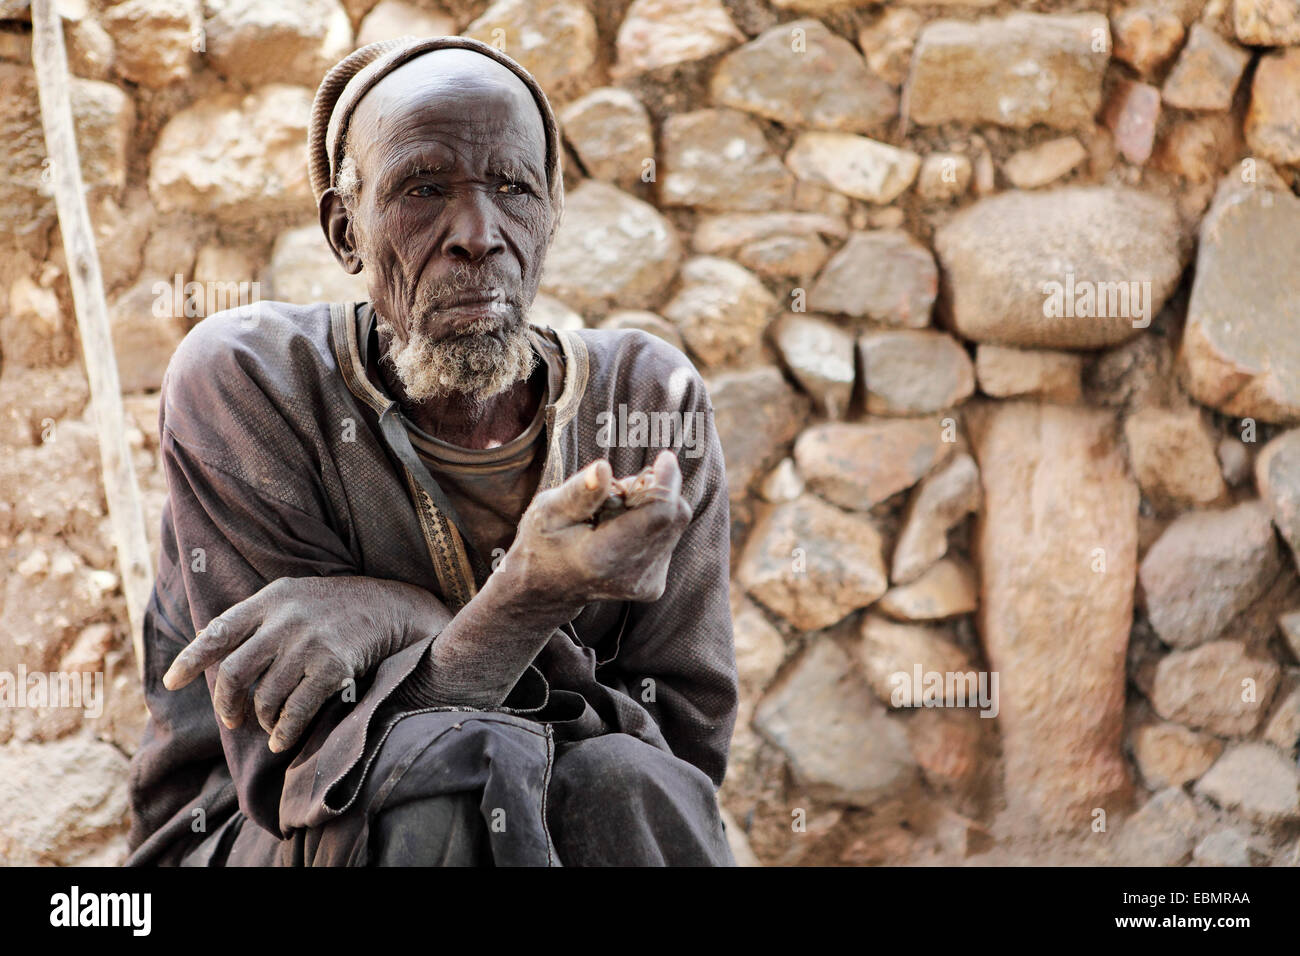 Oracle priest Mboula, 92, reading the oracle of the crab, Rhumsiki, Far North, Cameroon - Stock Image